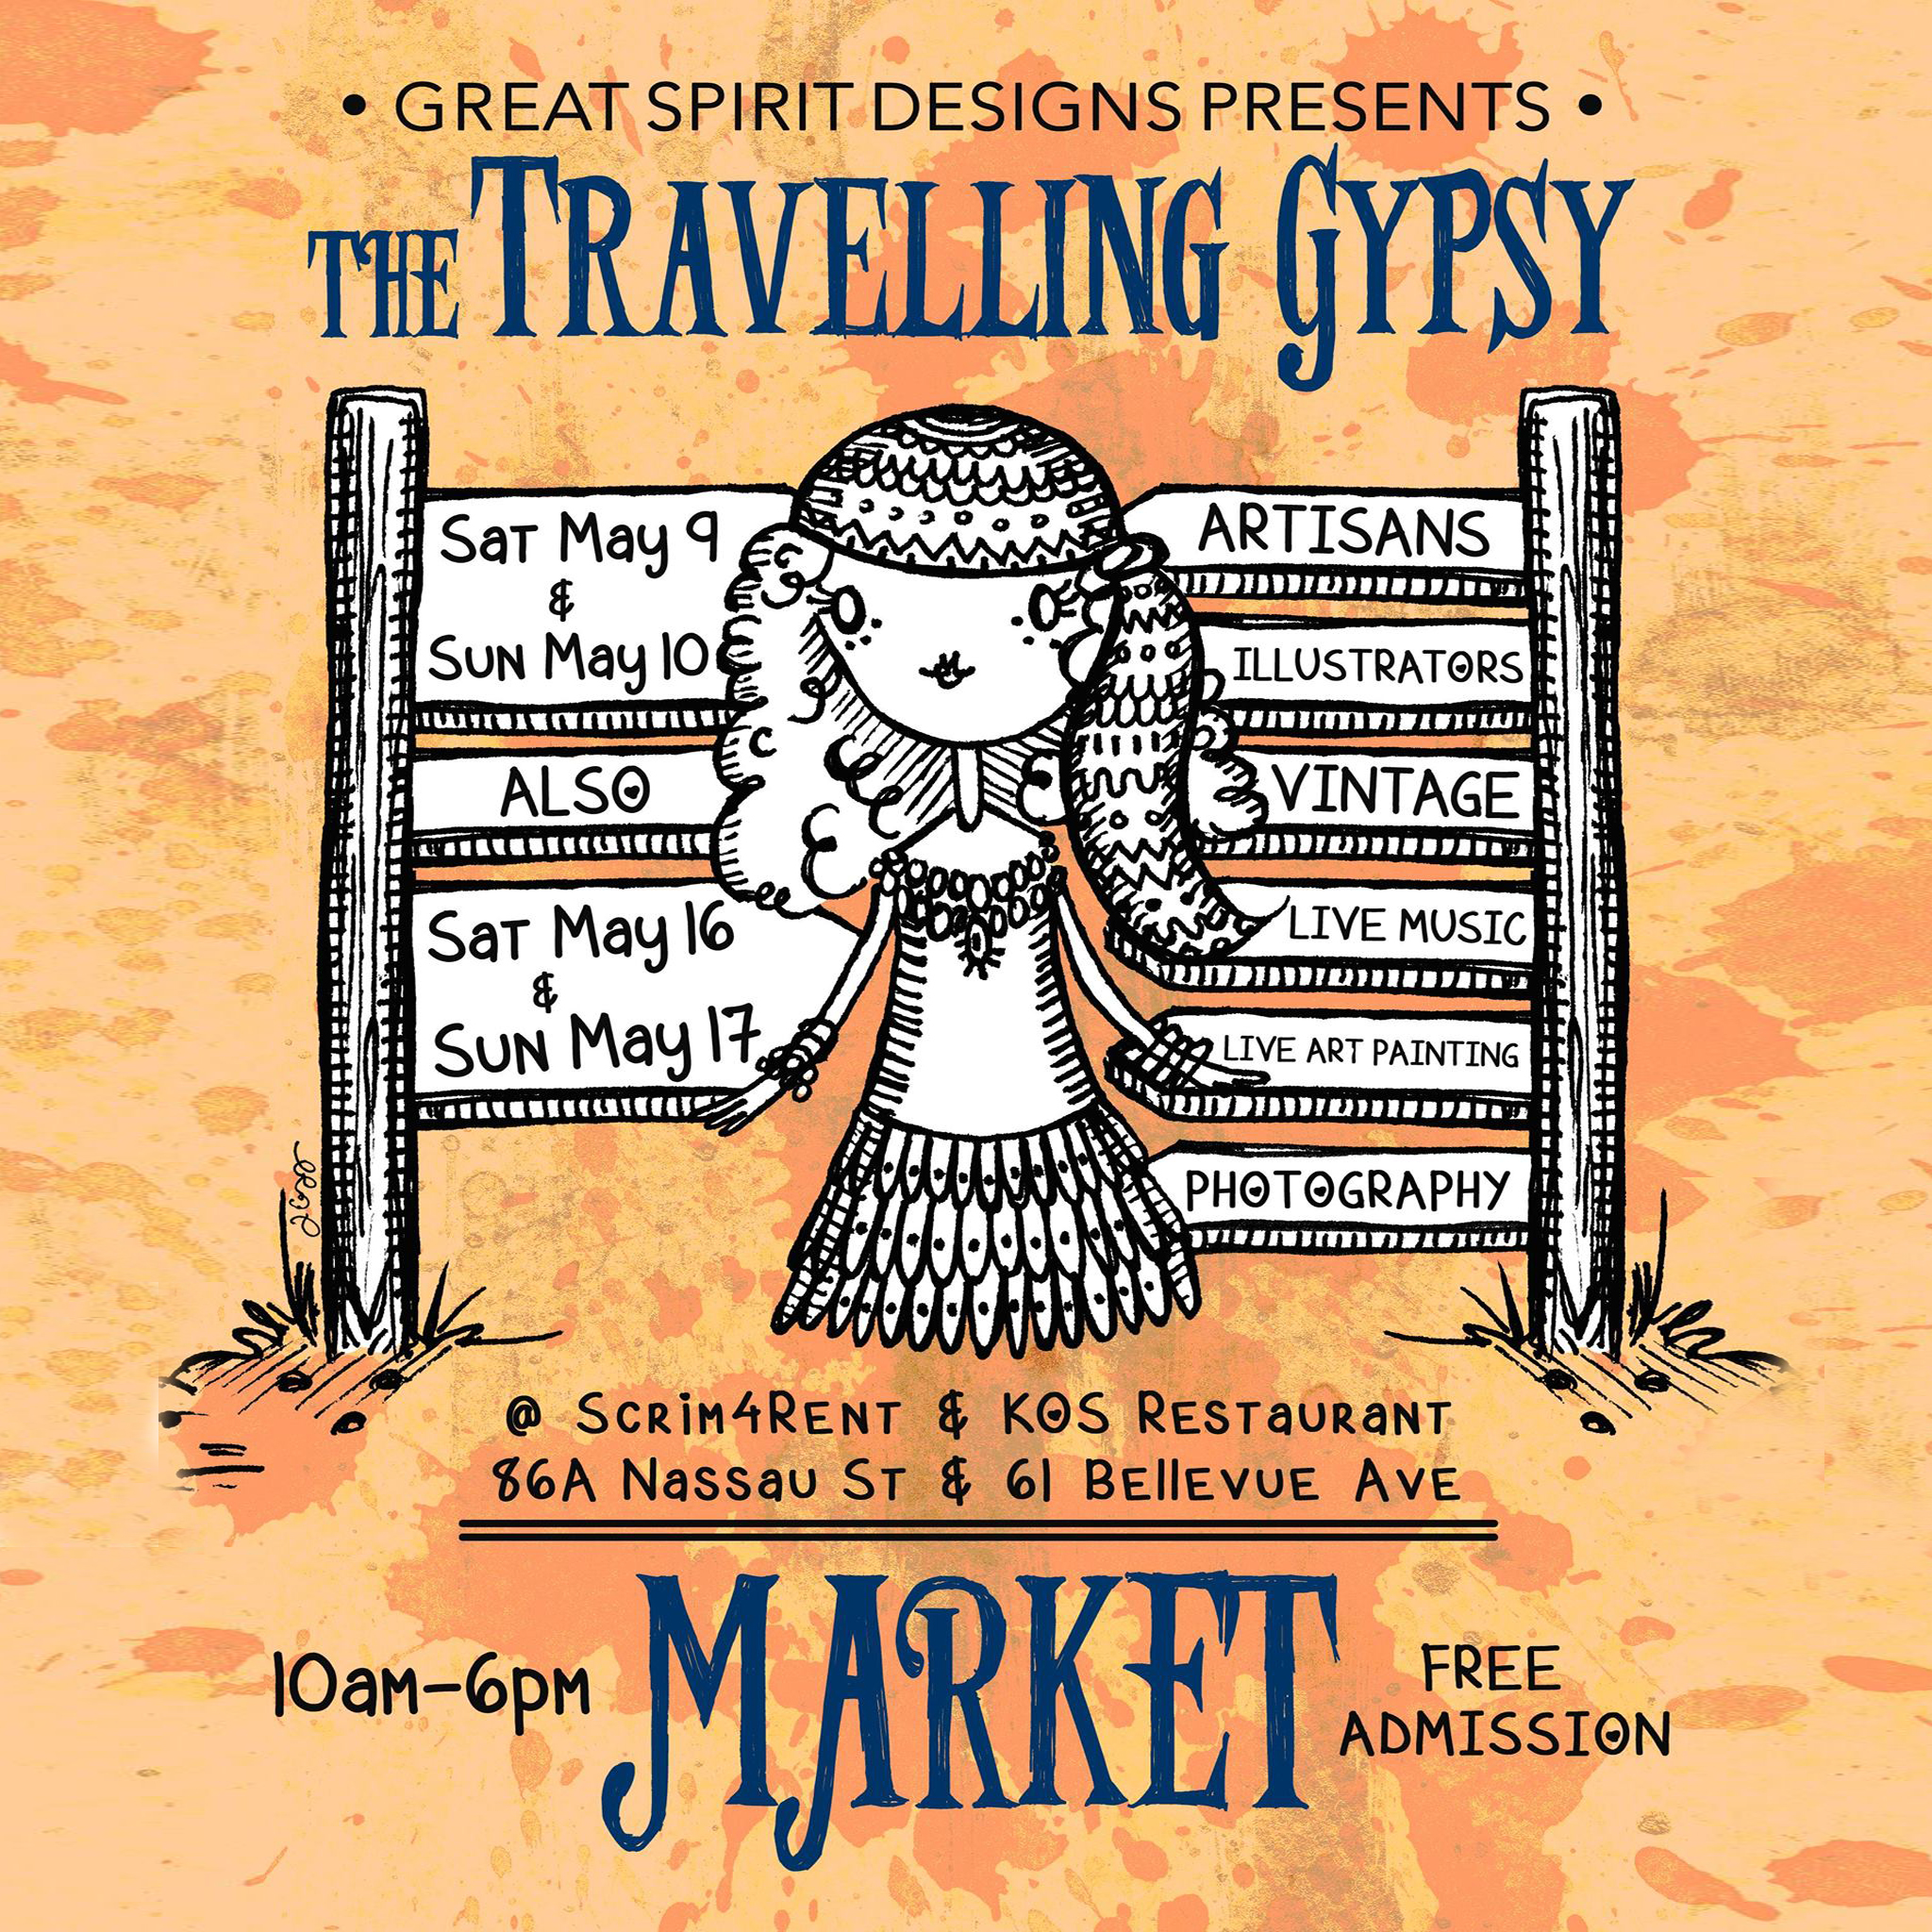 TravellingGypsy